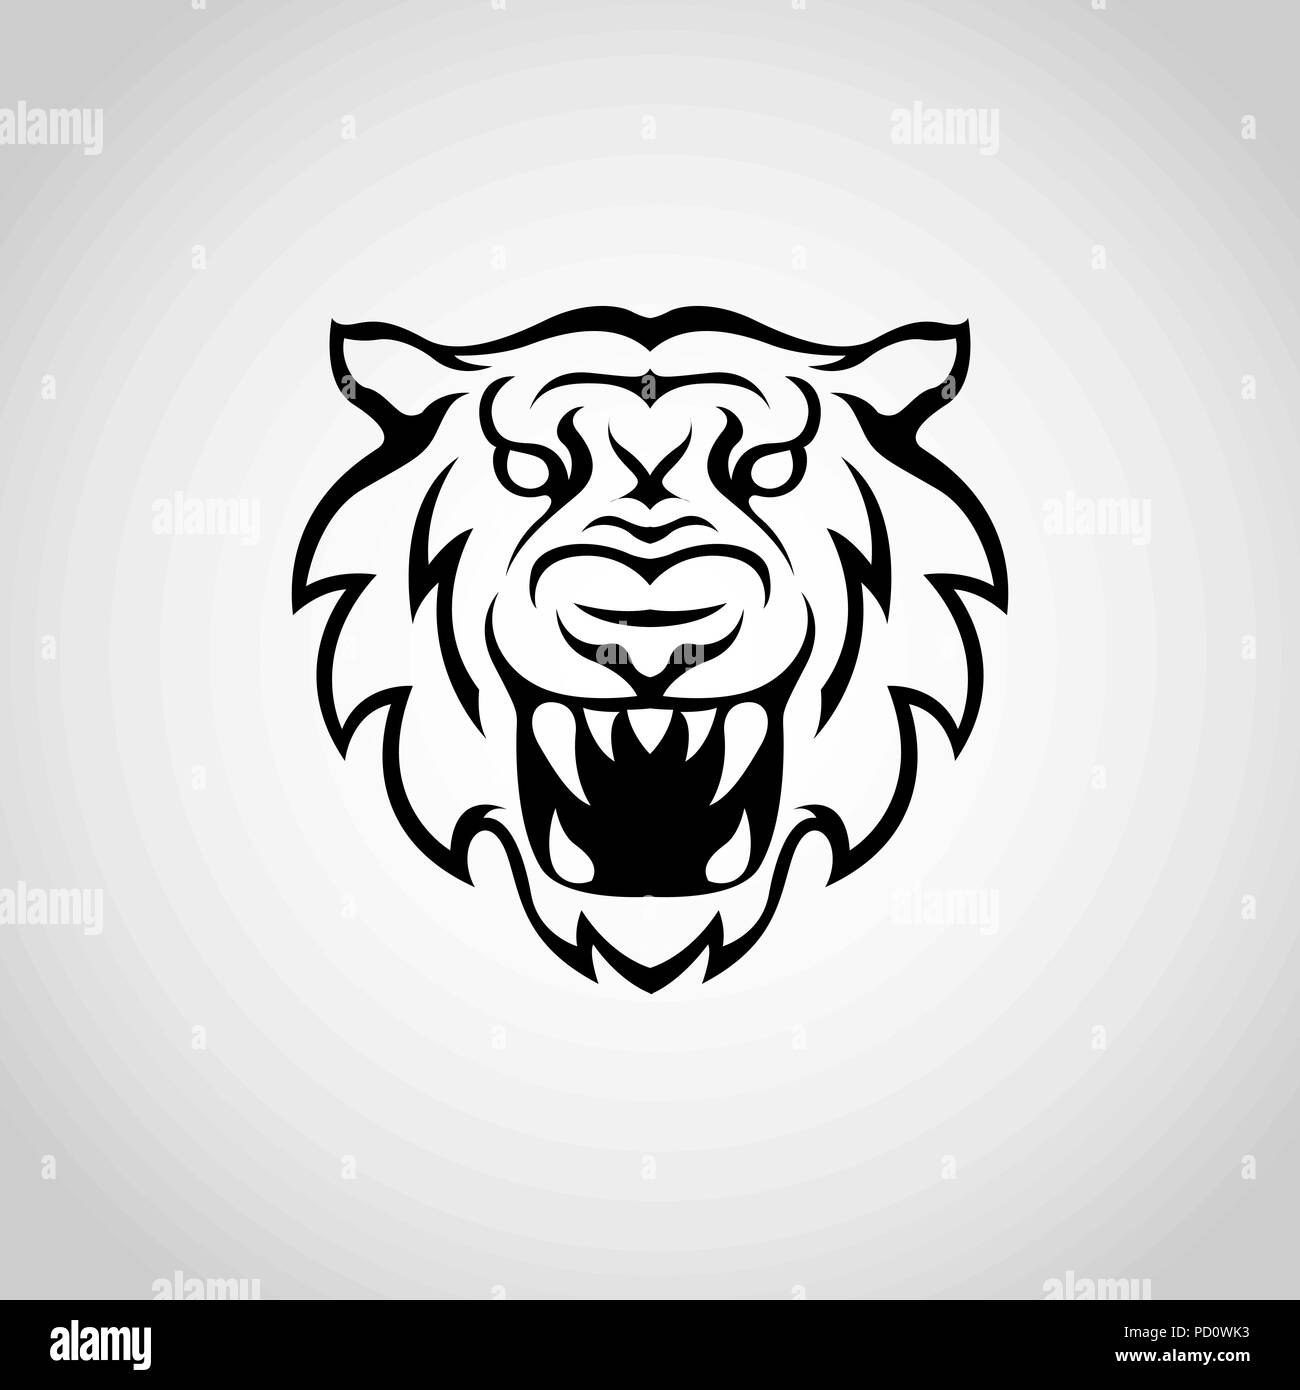 tiger logo high resolution stock photography and images alamy https www alamy com tiger vector logo icon illustration image214535079 html